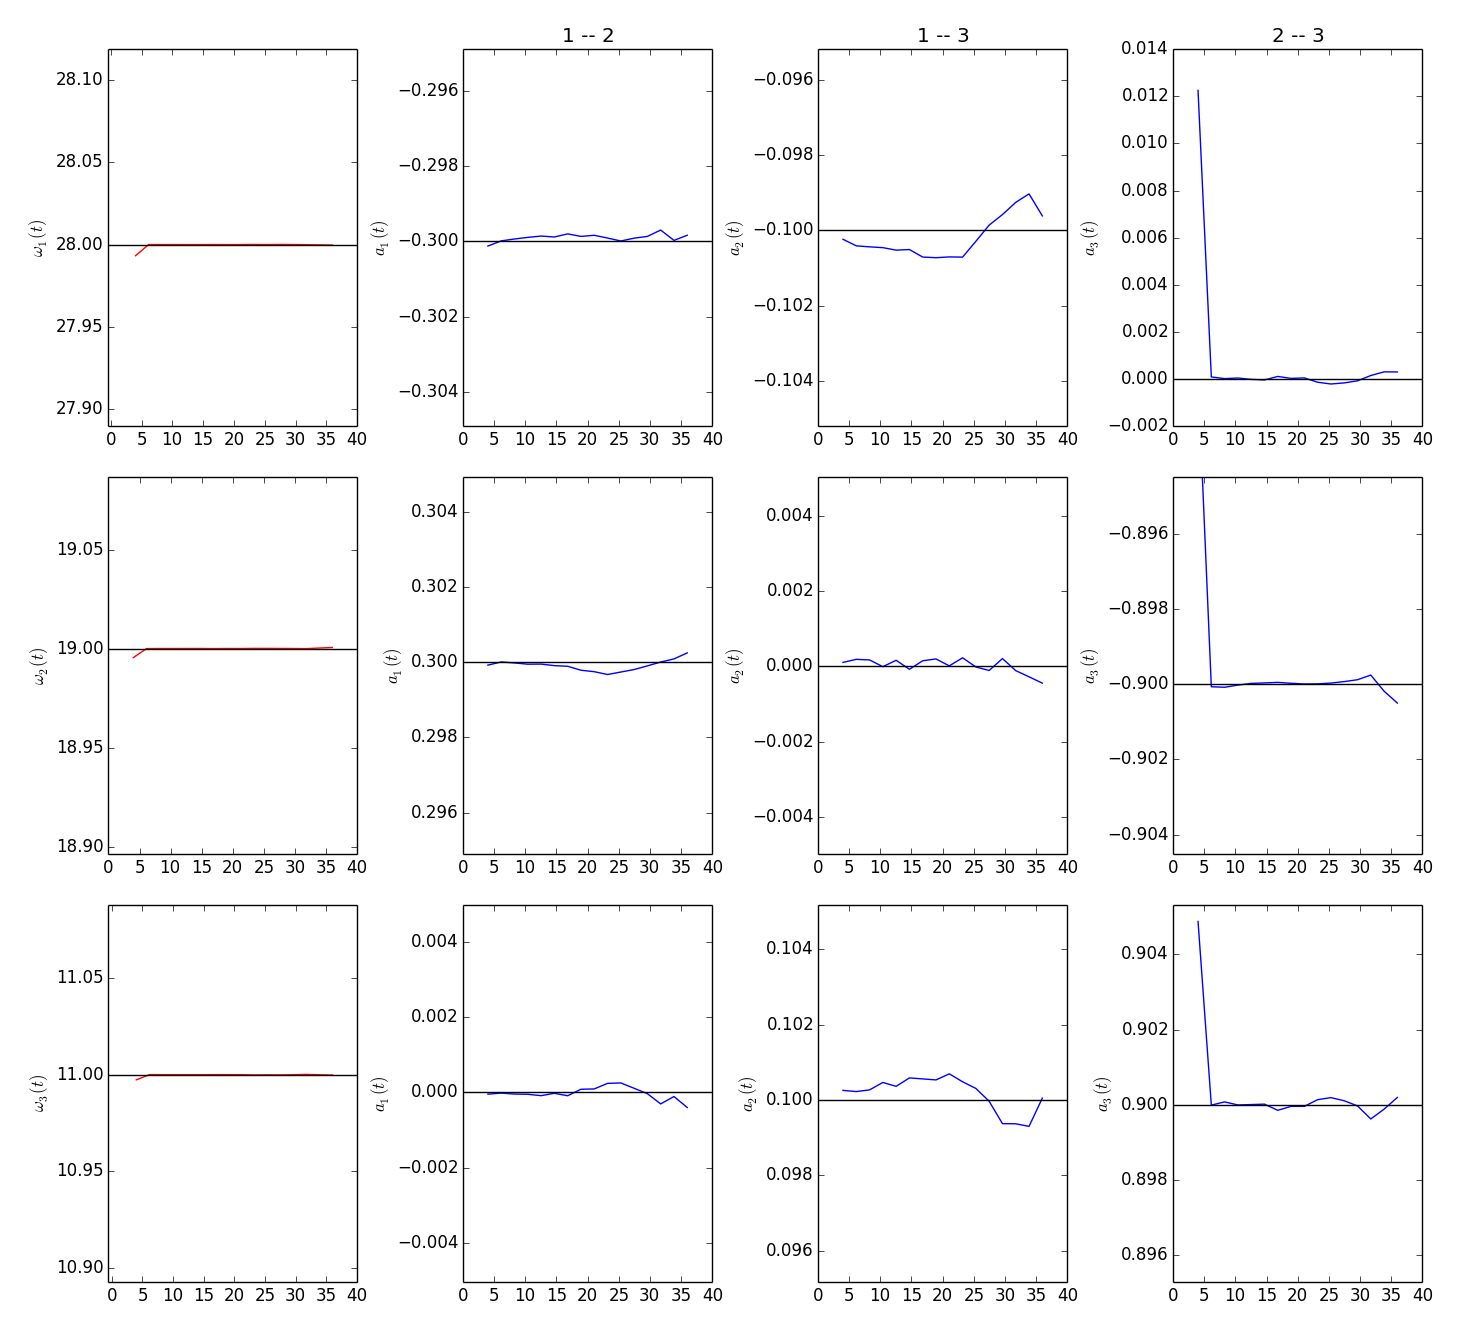 Fig. 2. Extracted parameters for presented dynamical system. First column shows values on intrinsic frequencies and the rest respective to title coupling value. Horizontal black lines indicate what are expected values.